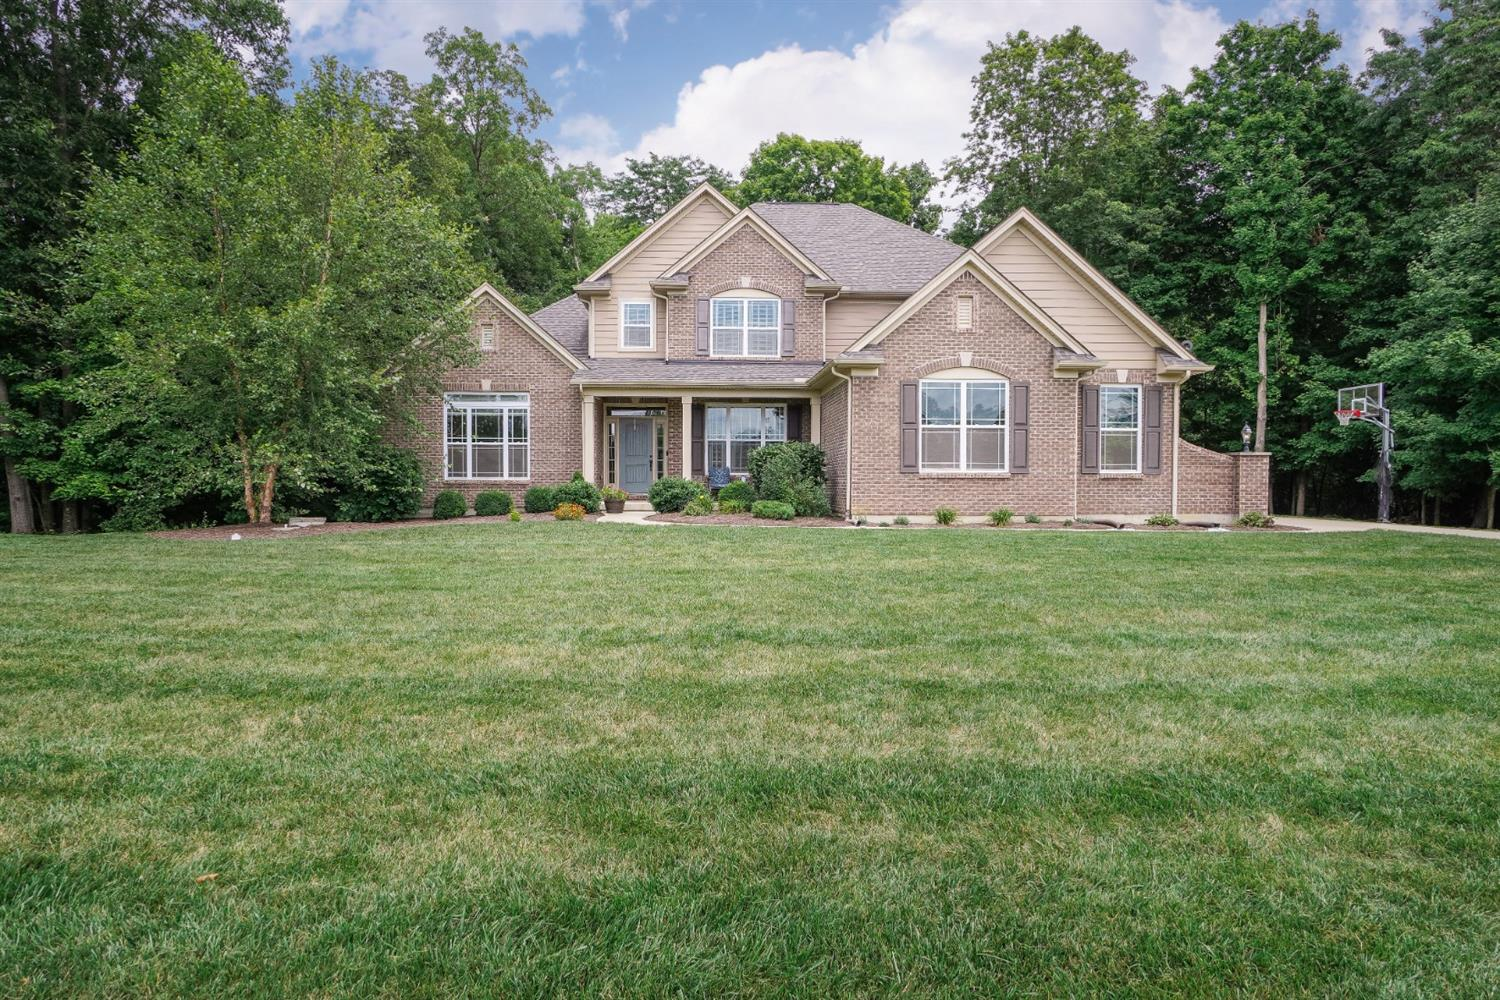 7730 Misty Meadows Ct Harlan Twp., OH